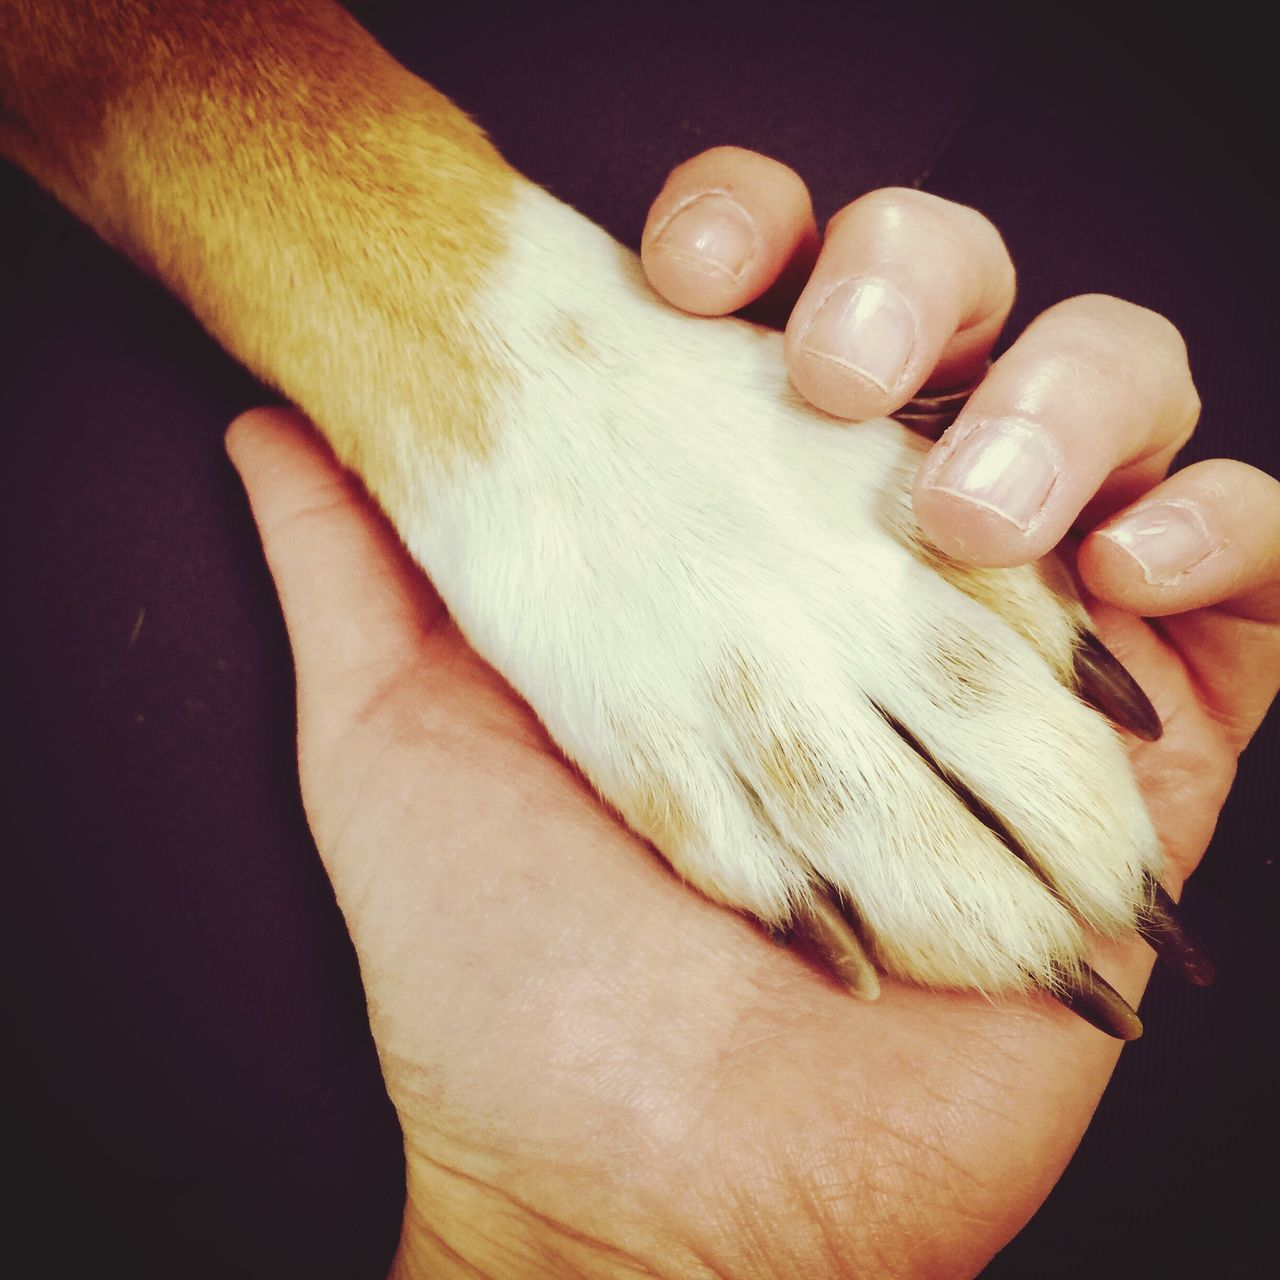 human hand, human body part, pets, domestic animals, one animal, domestic cat, one person, real people, mammal, holding, indoors, feline, close-up, men, day, people